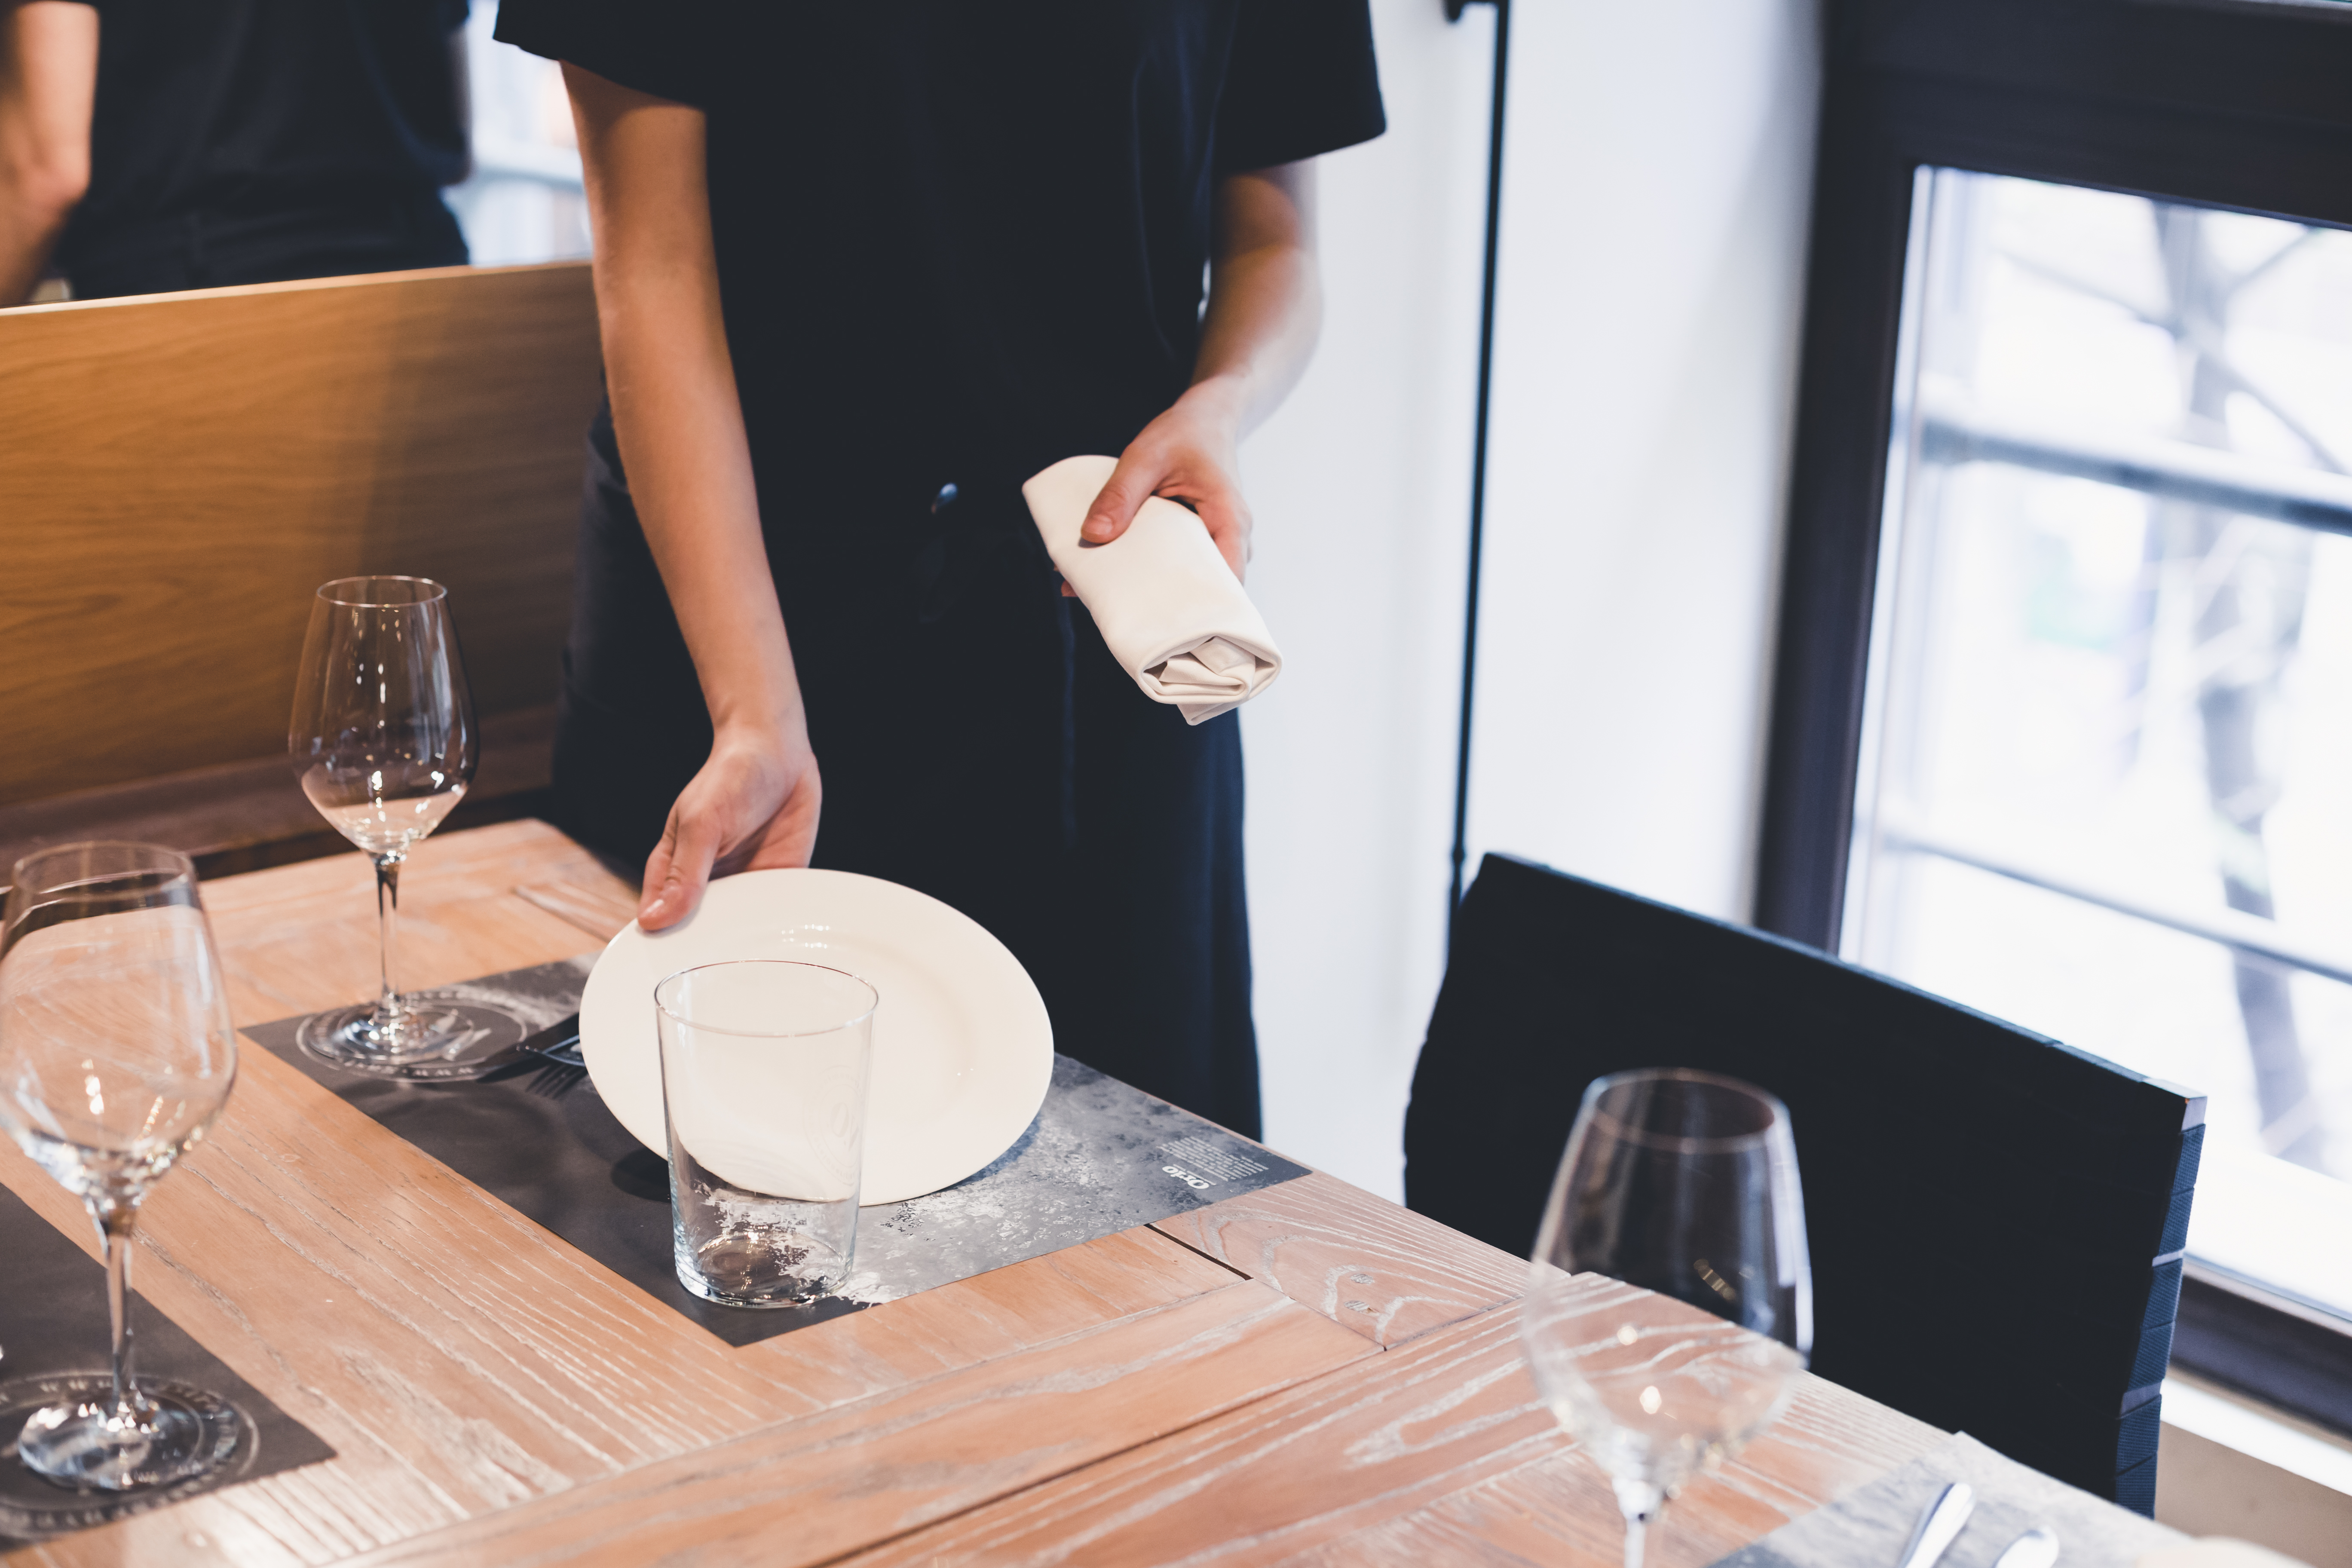 Waitress placing plate on table.